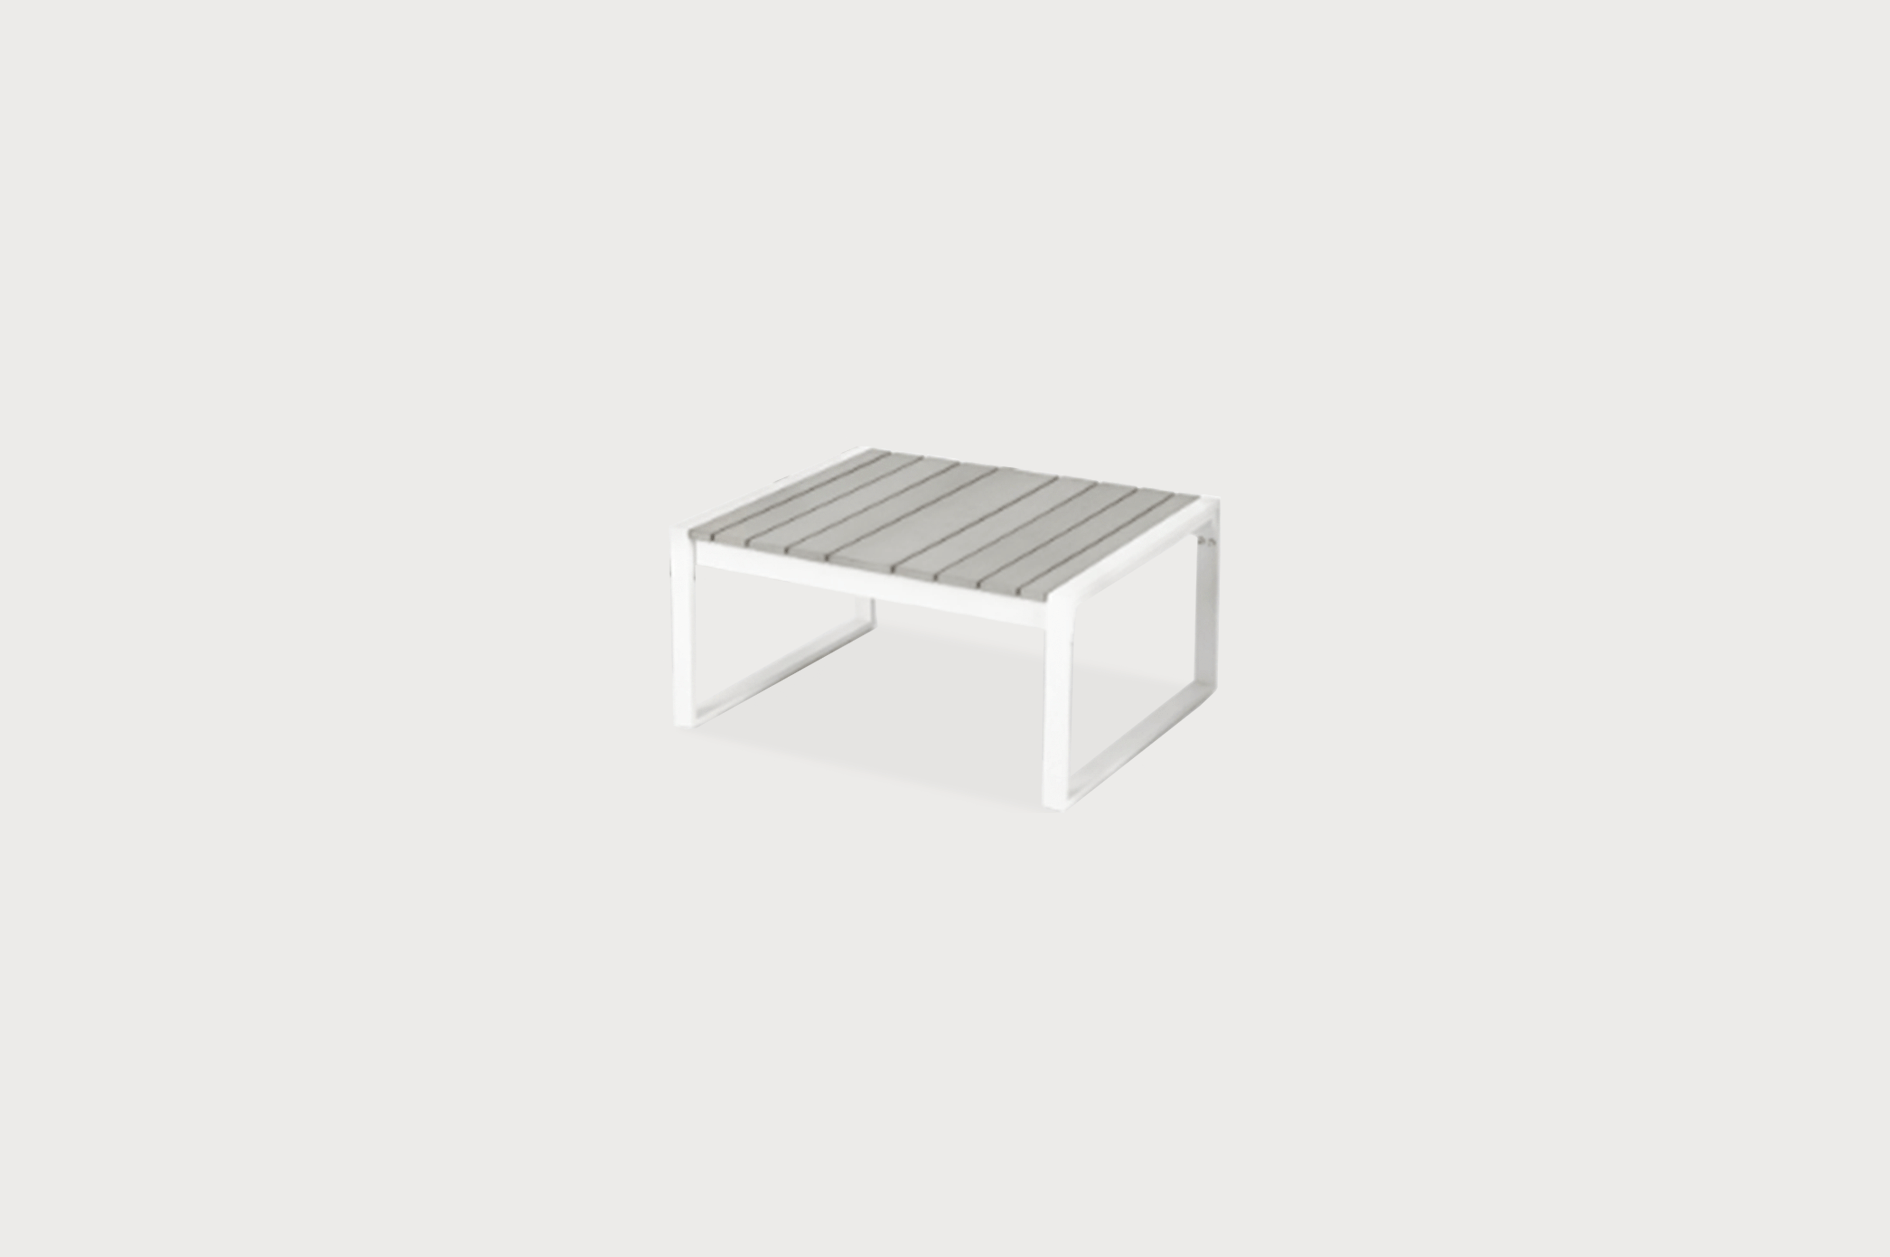 Alfresco coffee table